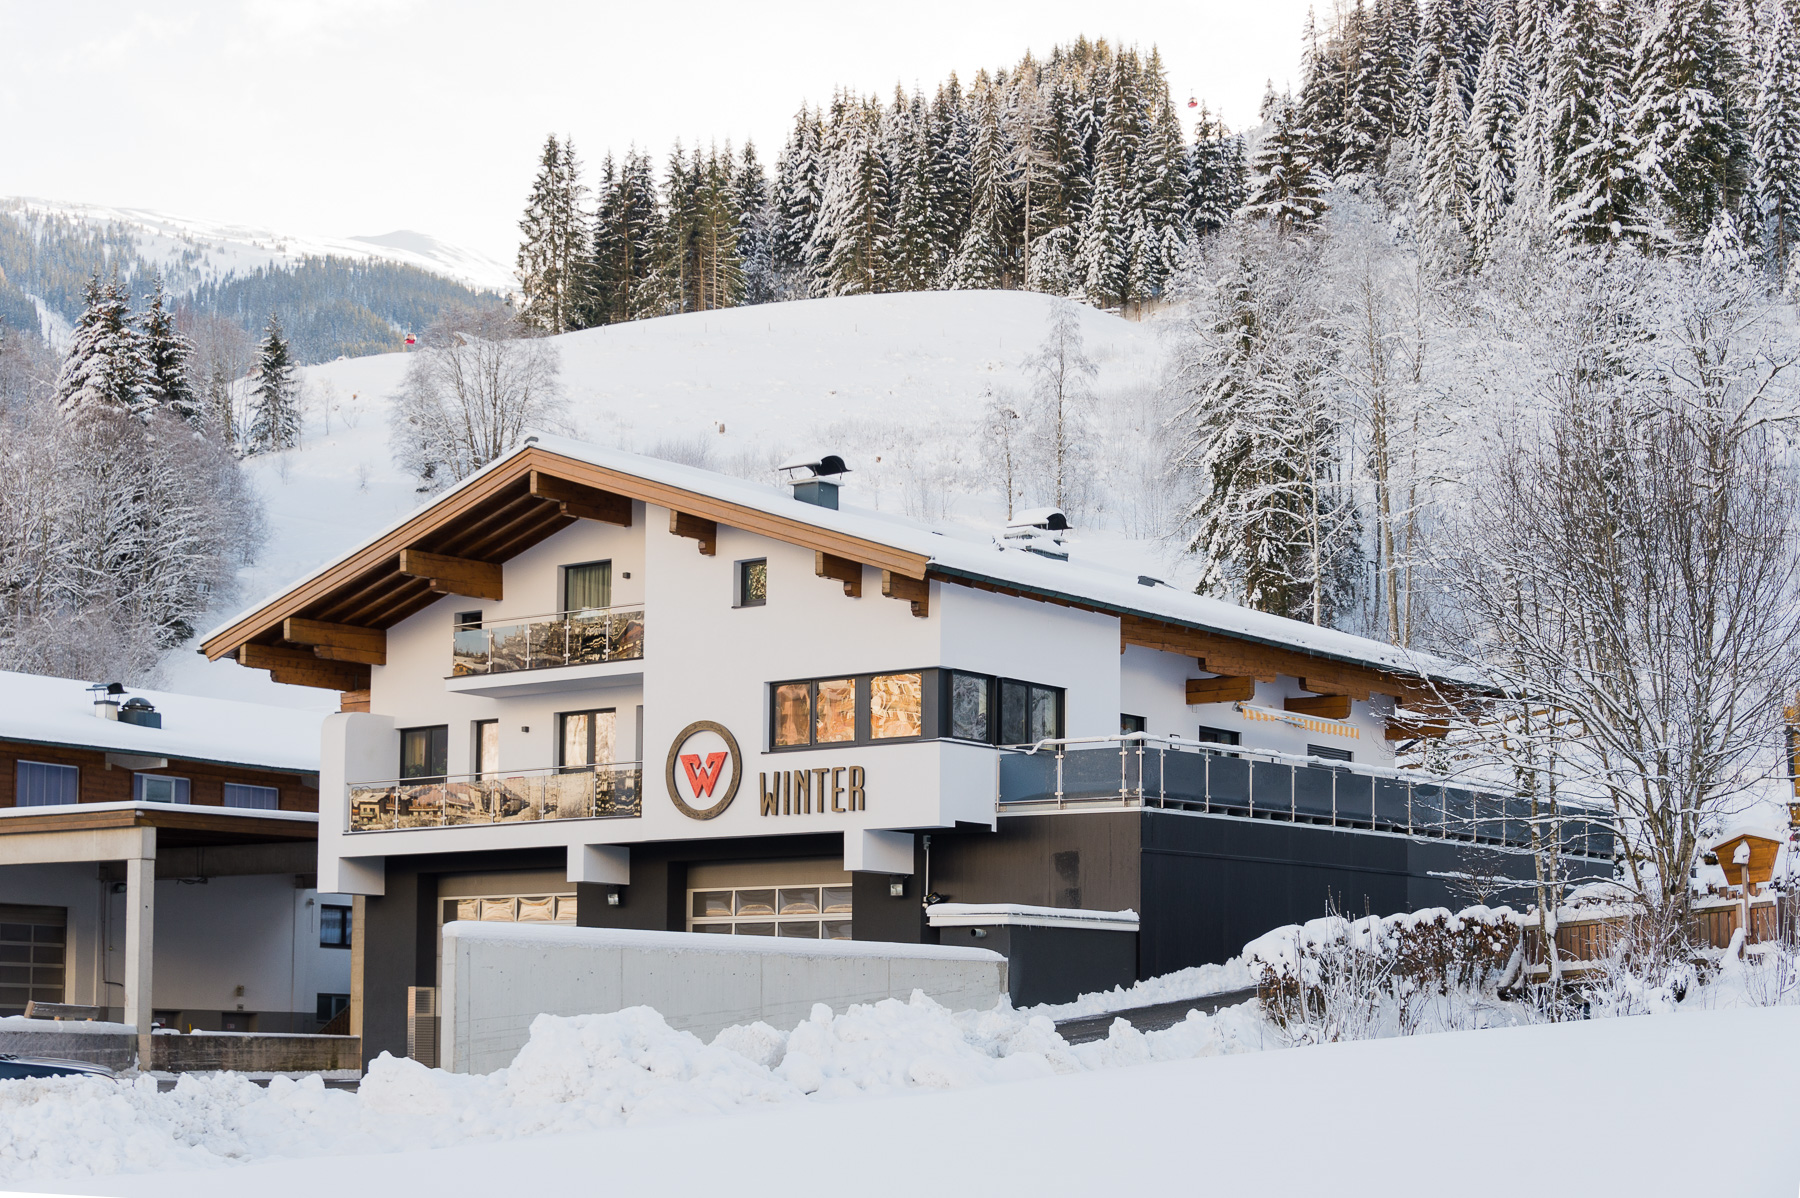 winter-appartements-saalbach-1